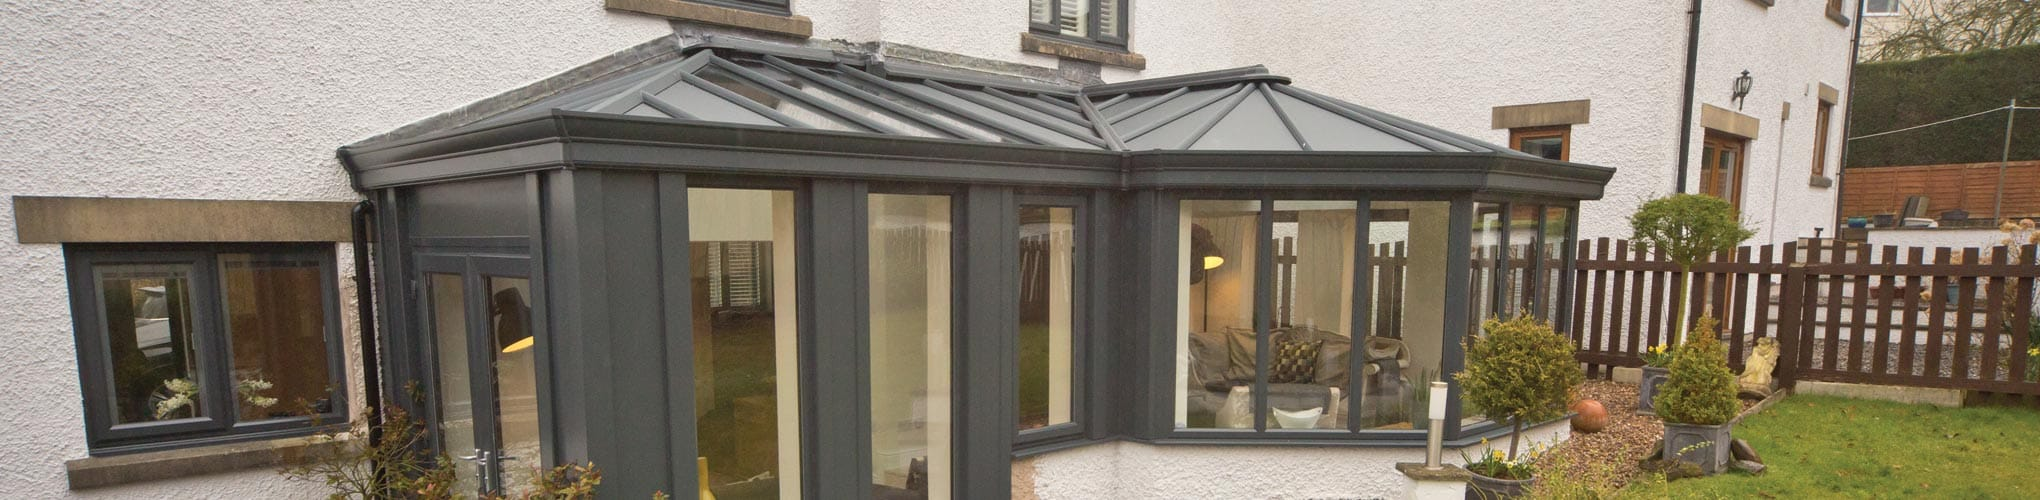 Solid Conservatory Roof Replacement Prices Yorkshire